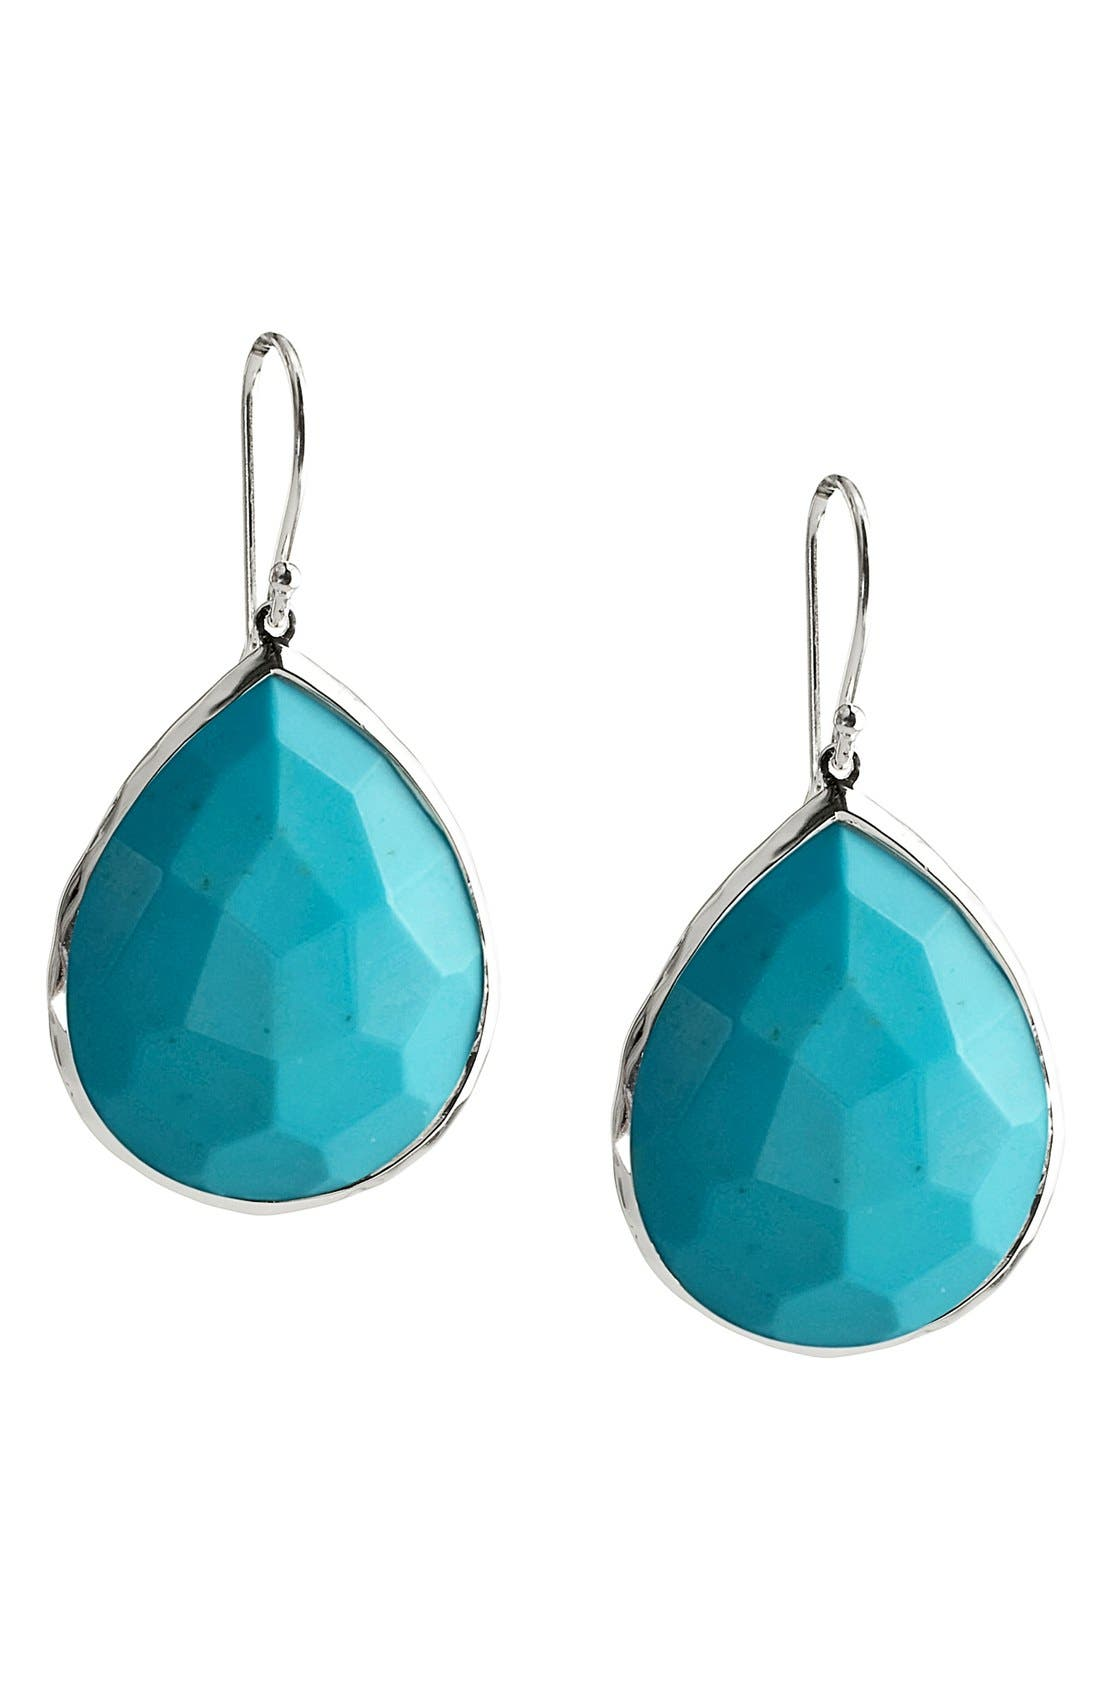 Main Image - Ippolita 'Wonderland - Rainbow' Large Teardrop Earrings